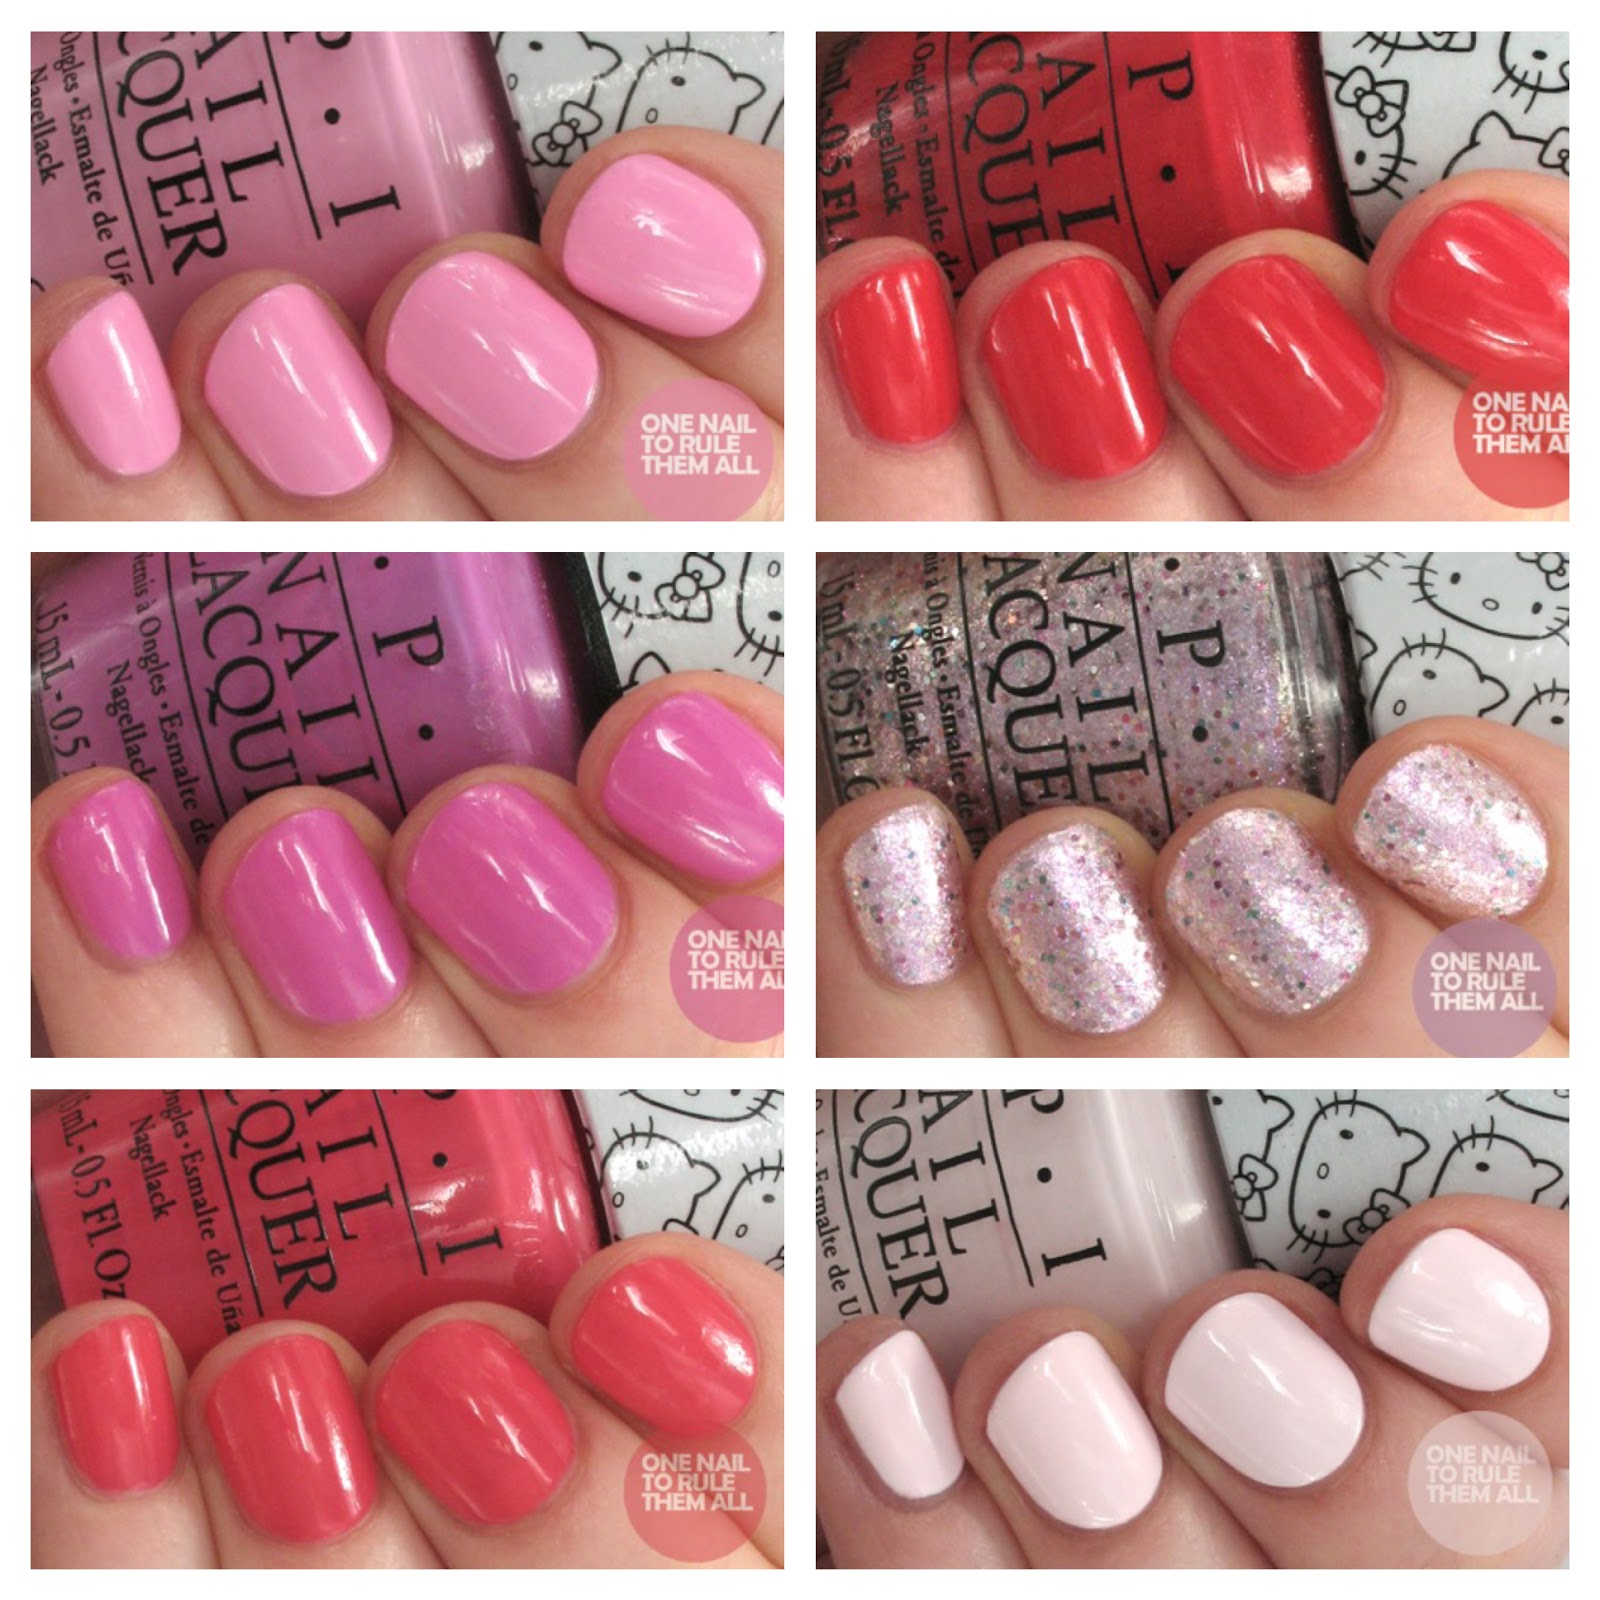 One Nail To Rule Them All OPI Hello Kitty Collection Review and